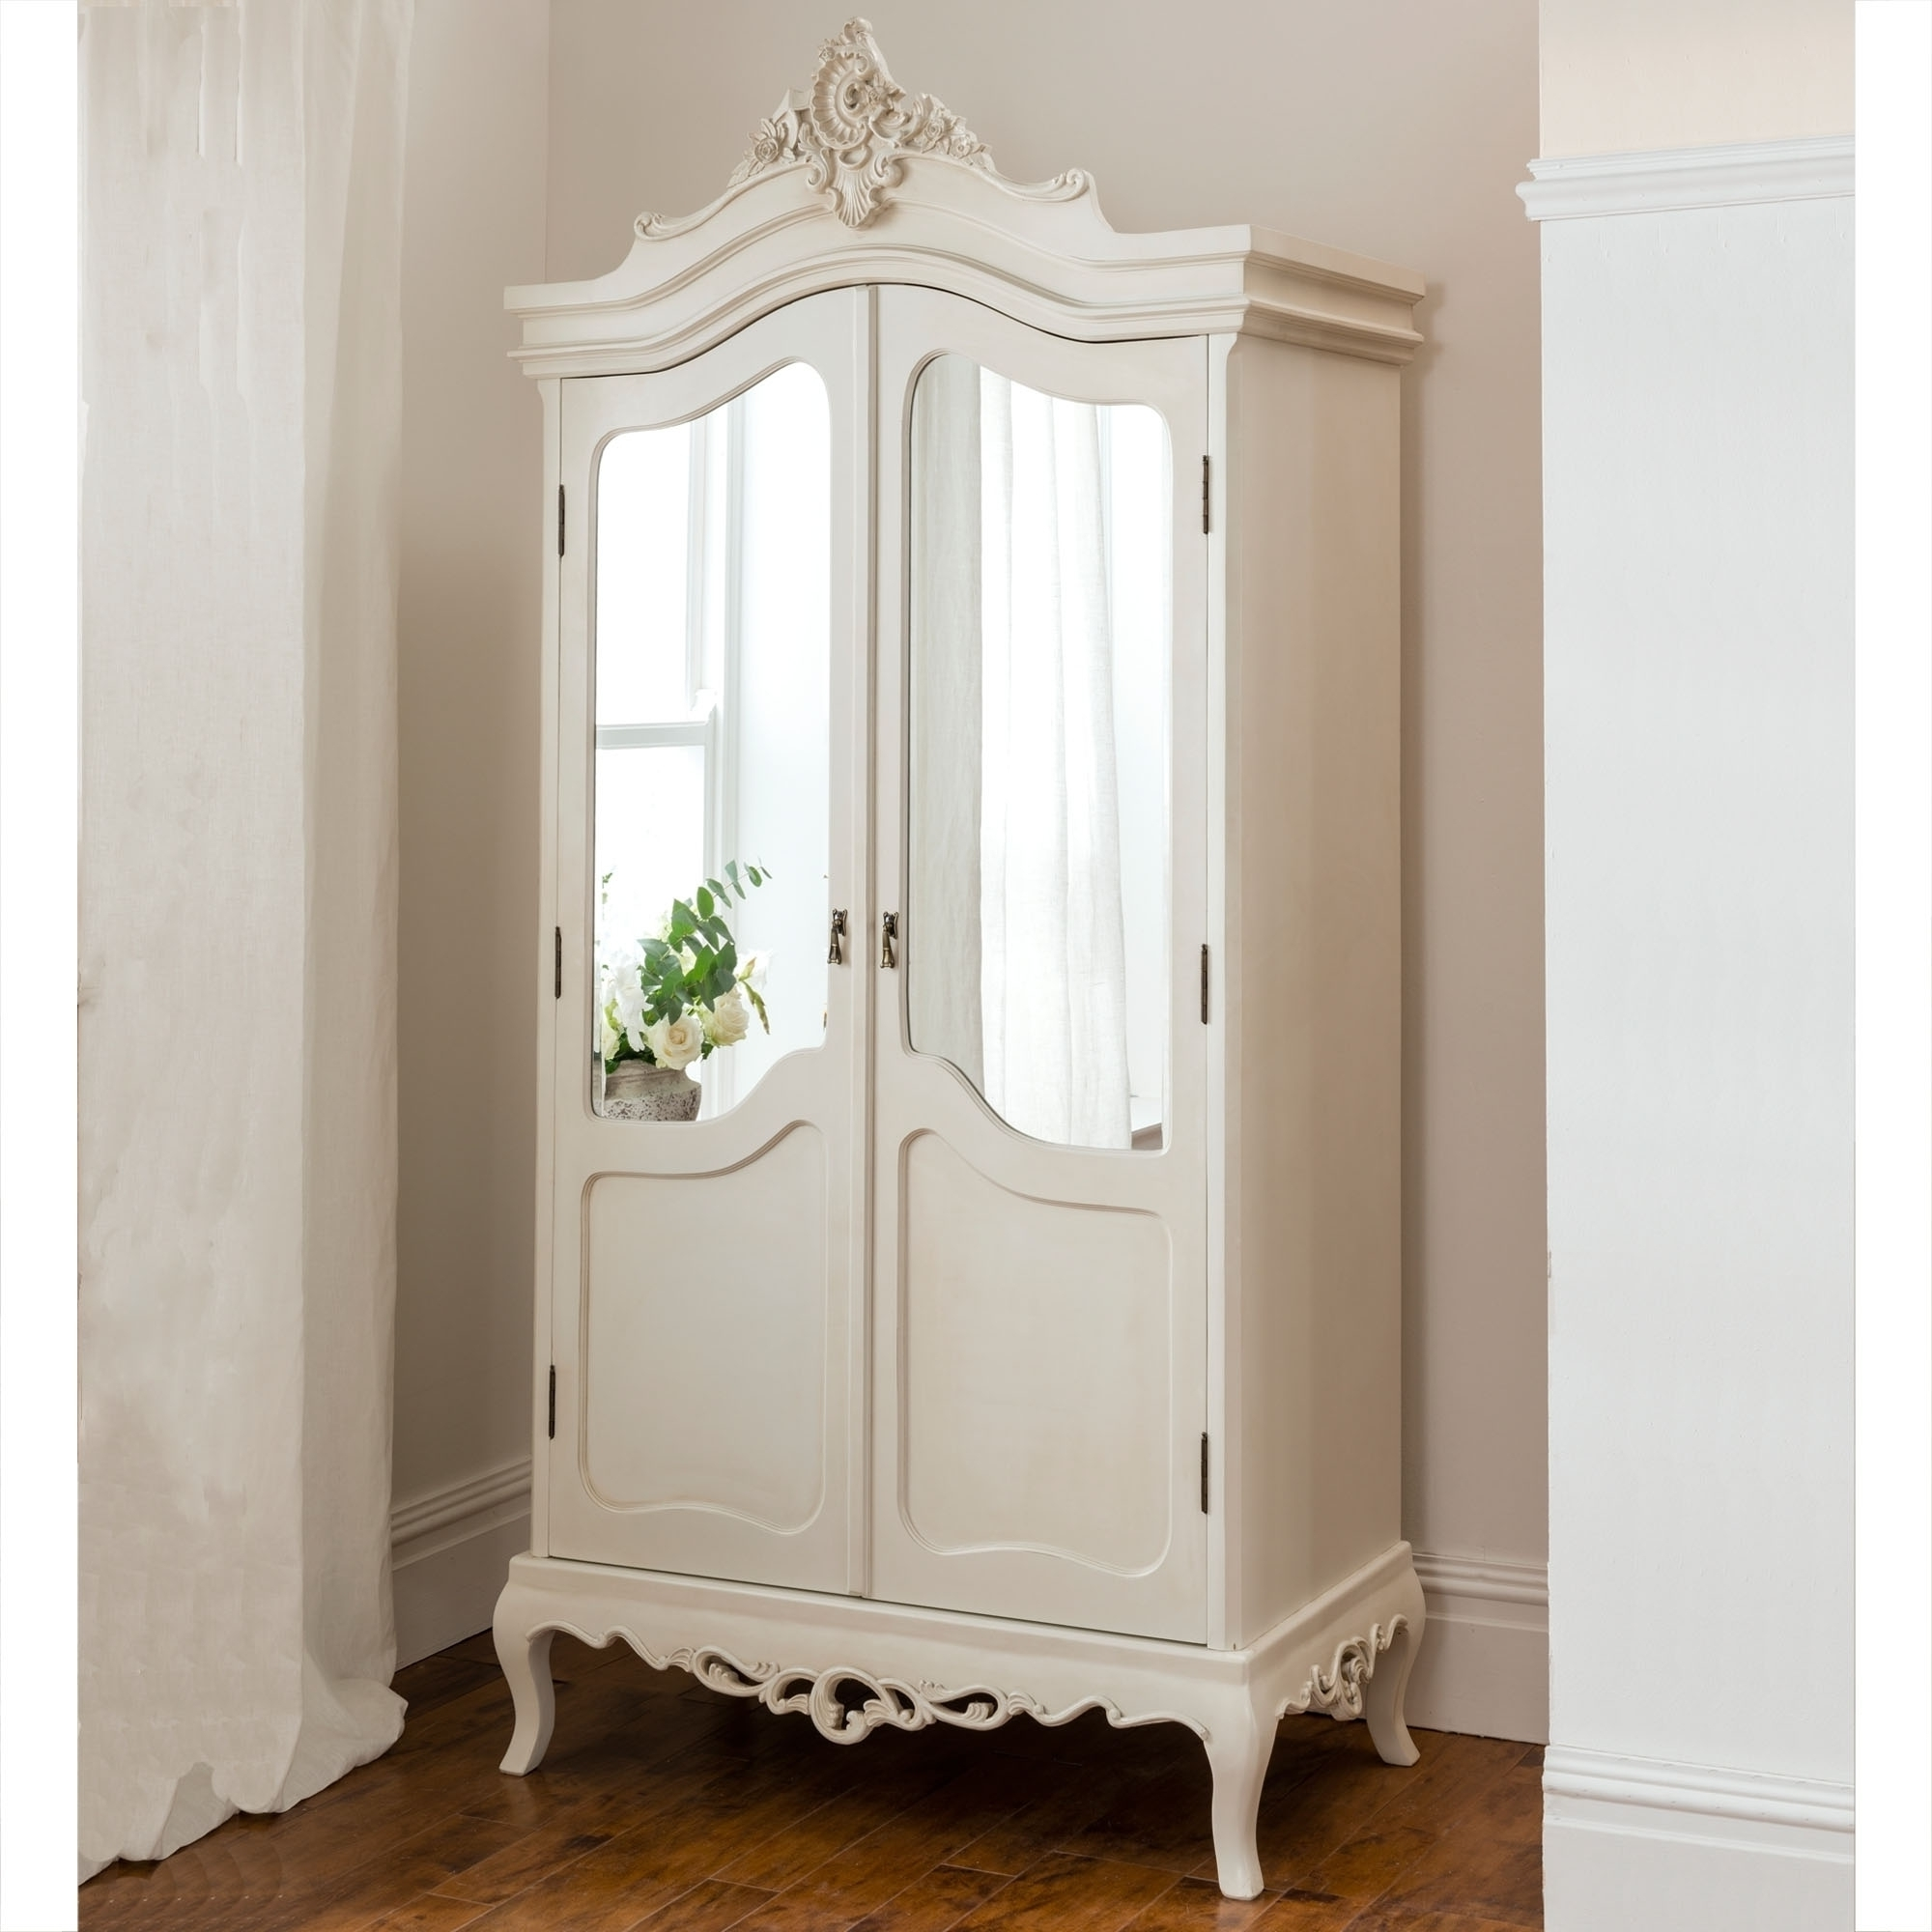 Annaelle Antique French Wardrobe Intended For Most Up To Date Silver French Wardrobes (View 1 of 15)